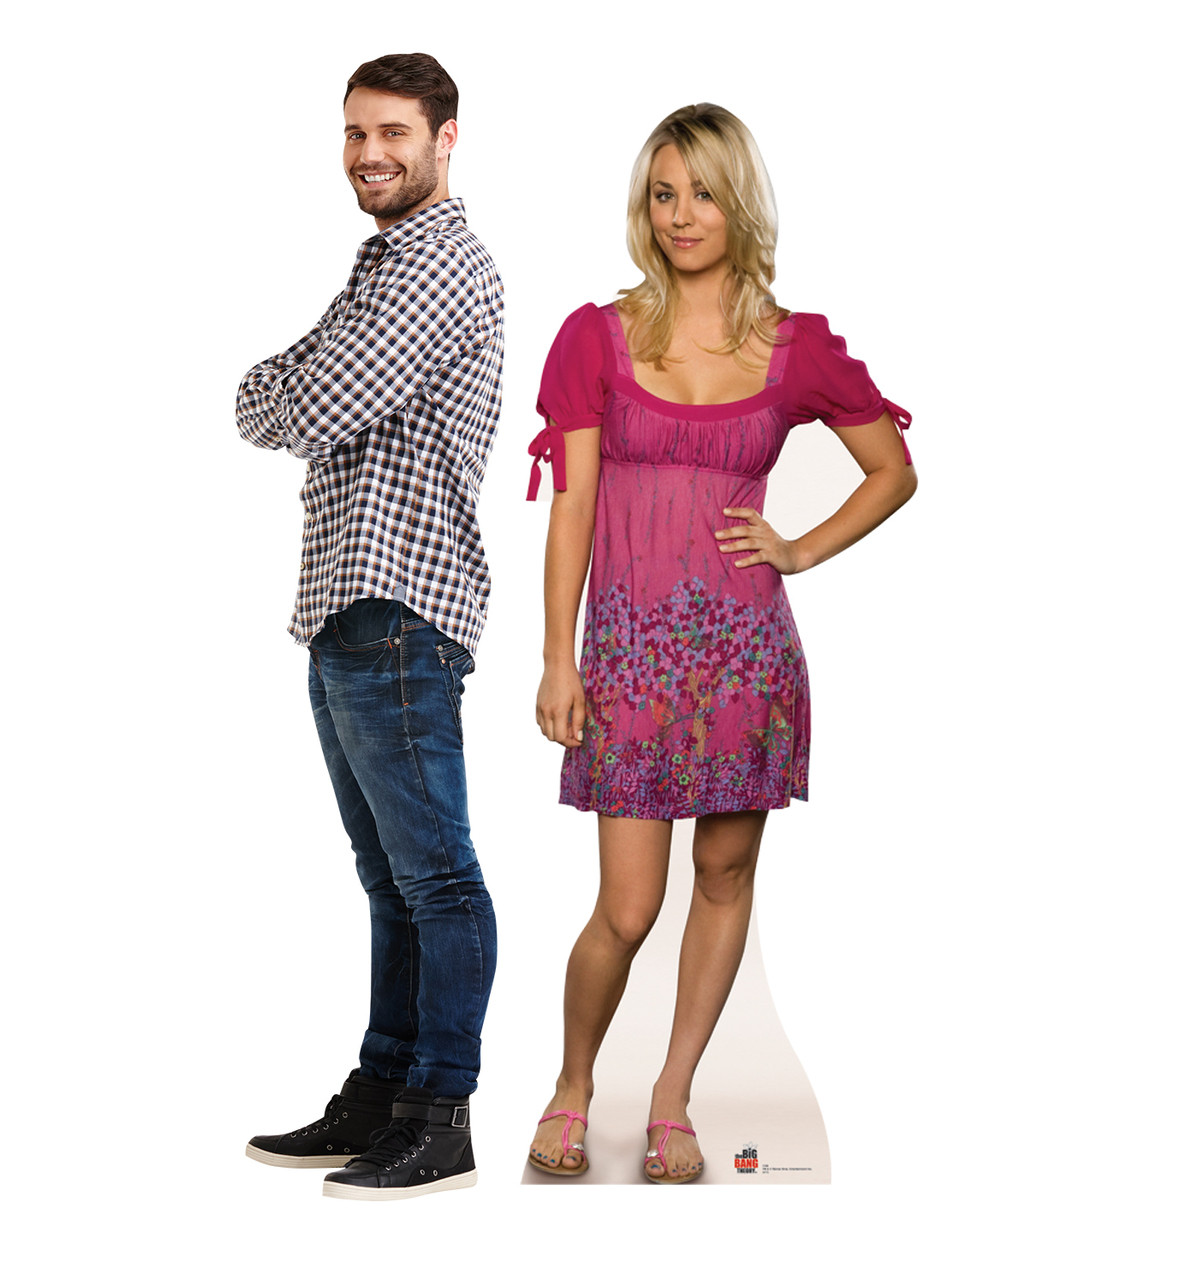 Life-size cardboard standee of Penny with model